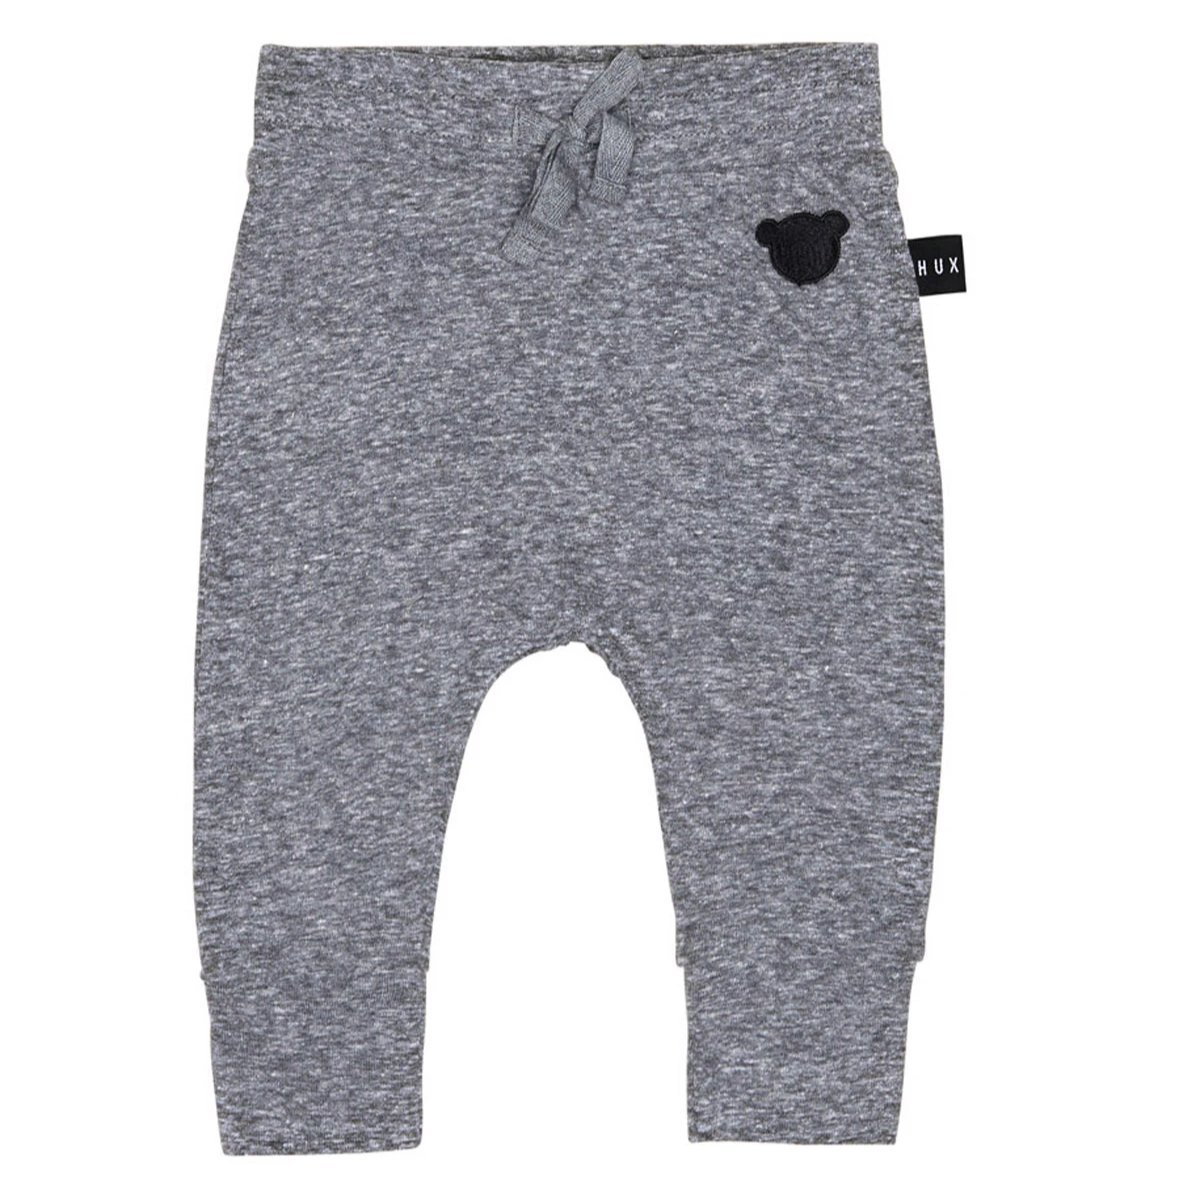 Charcoal Drop Crutch Pants